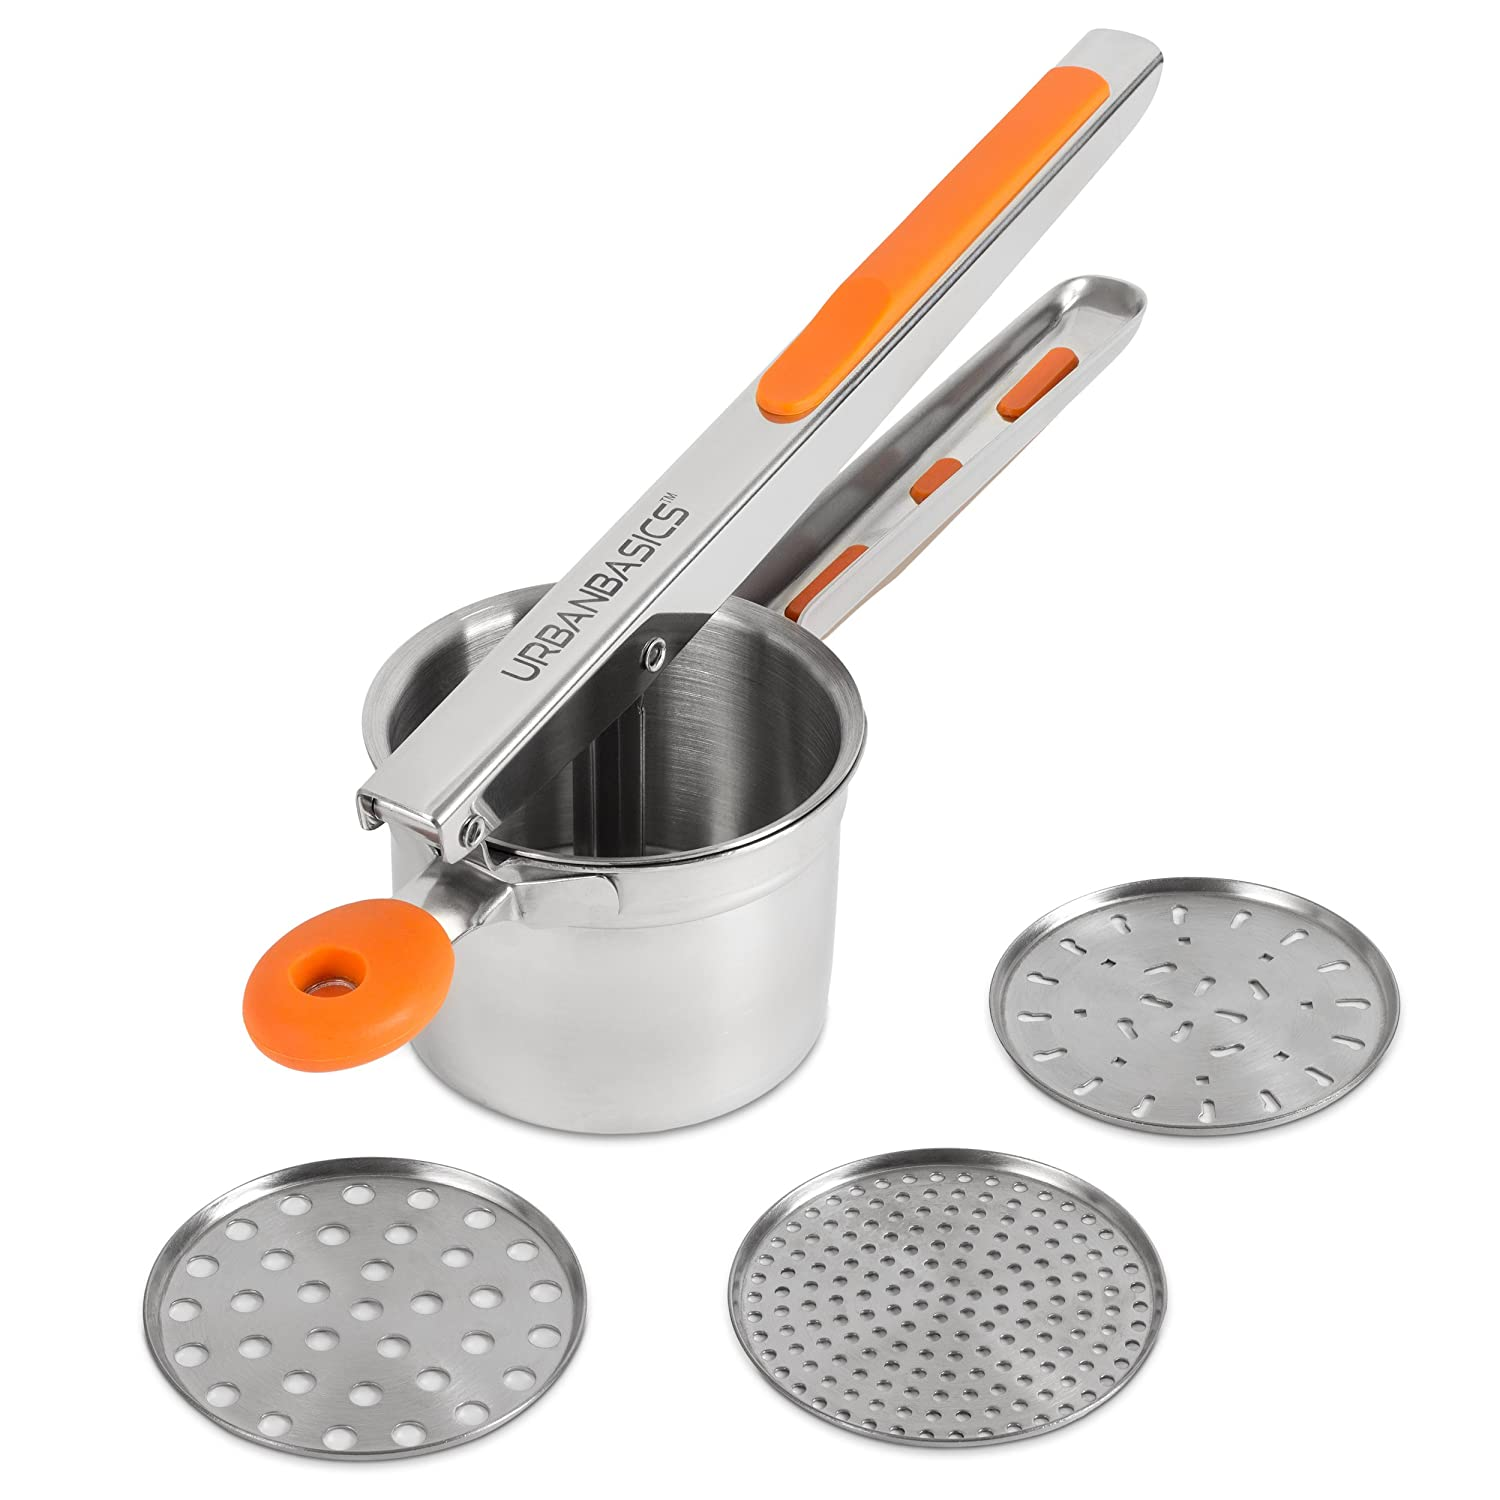 #1 Potato Ricer - Premium Potato Masher - Baby Food Strainer - Gnocchi Press With 3 Interchangeable Discs - Heavy Duty - Strong Stainless Steel - In Bright Orange Silicone Grip - By UrbanBasics™